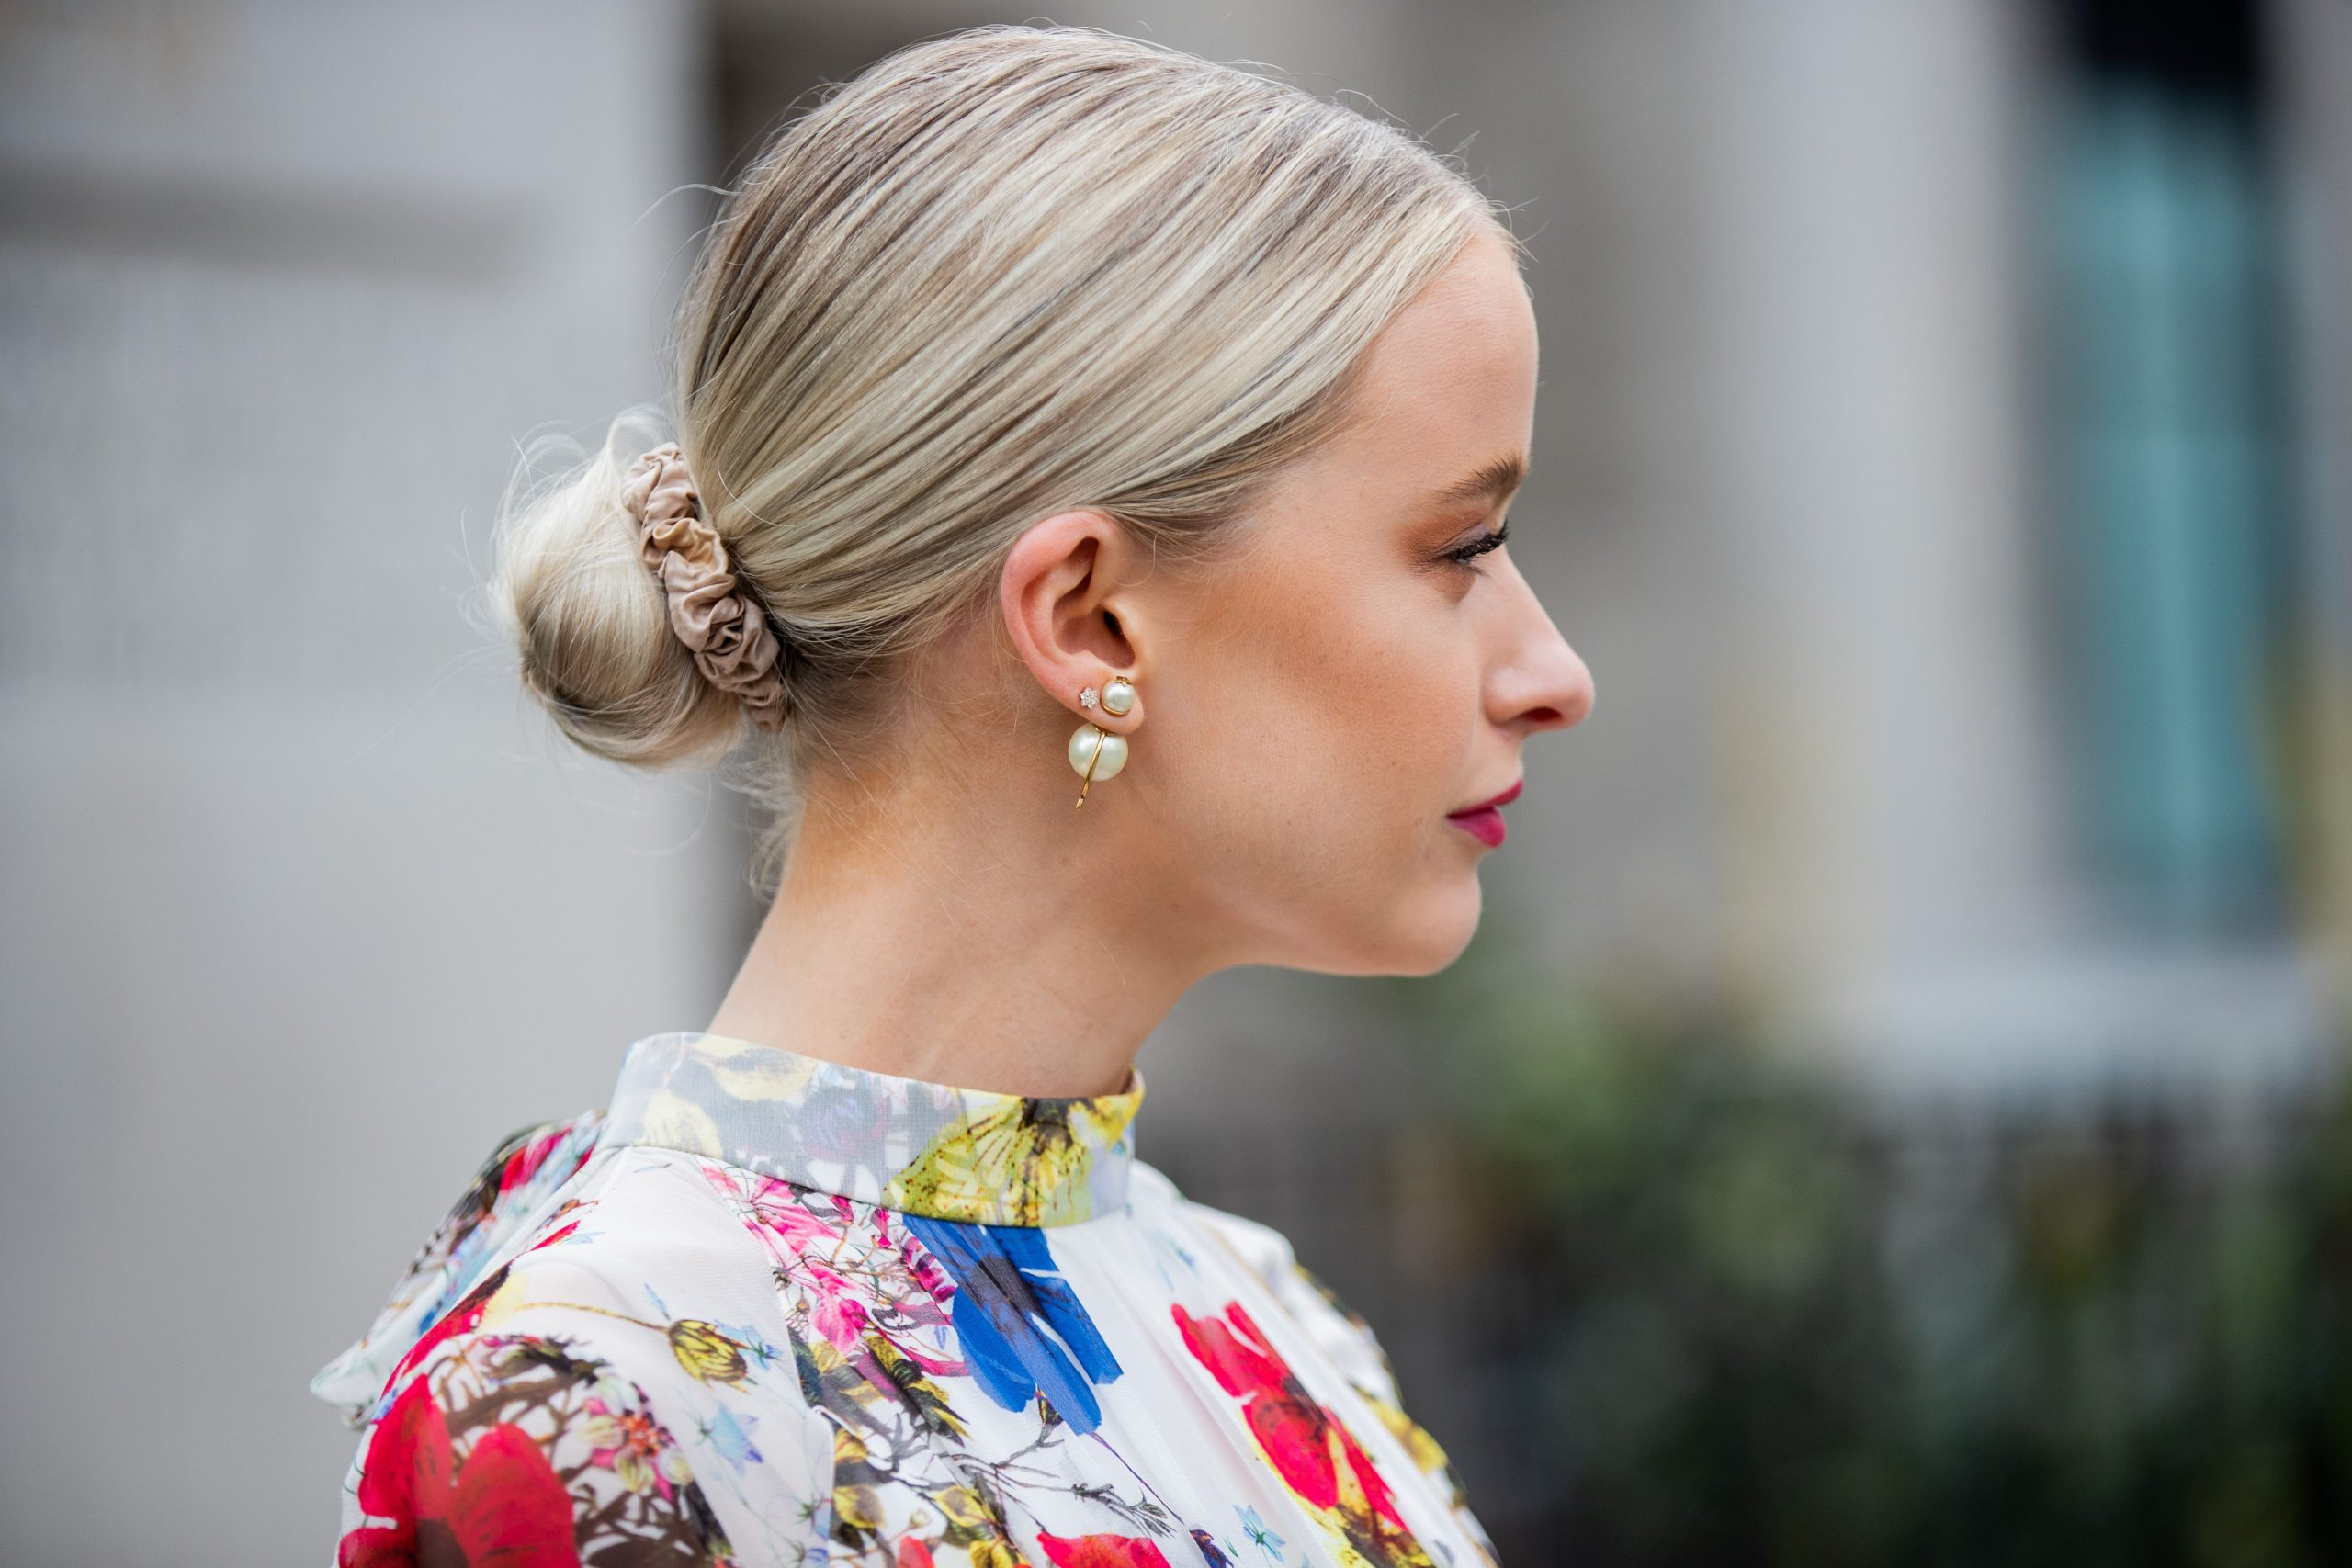 Coiffure Mariage : 20 Chignons Canons À Porter Quand On Pertaining To Rcf Dates La Superior Court 2020